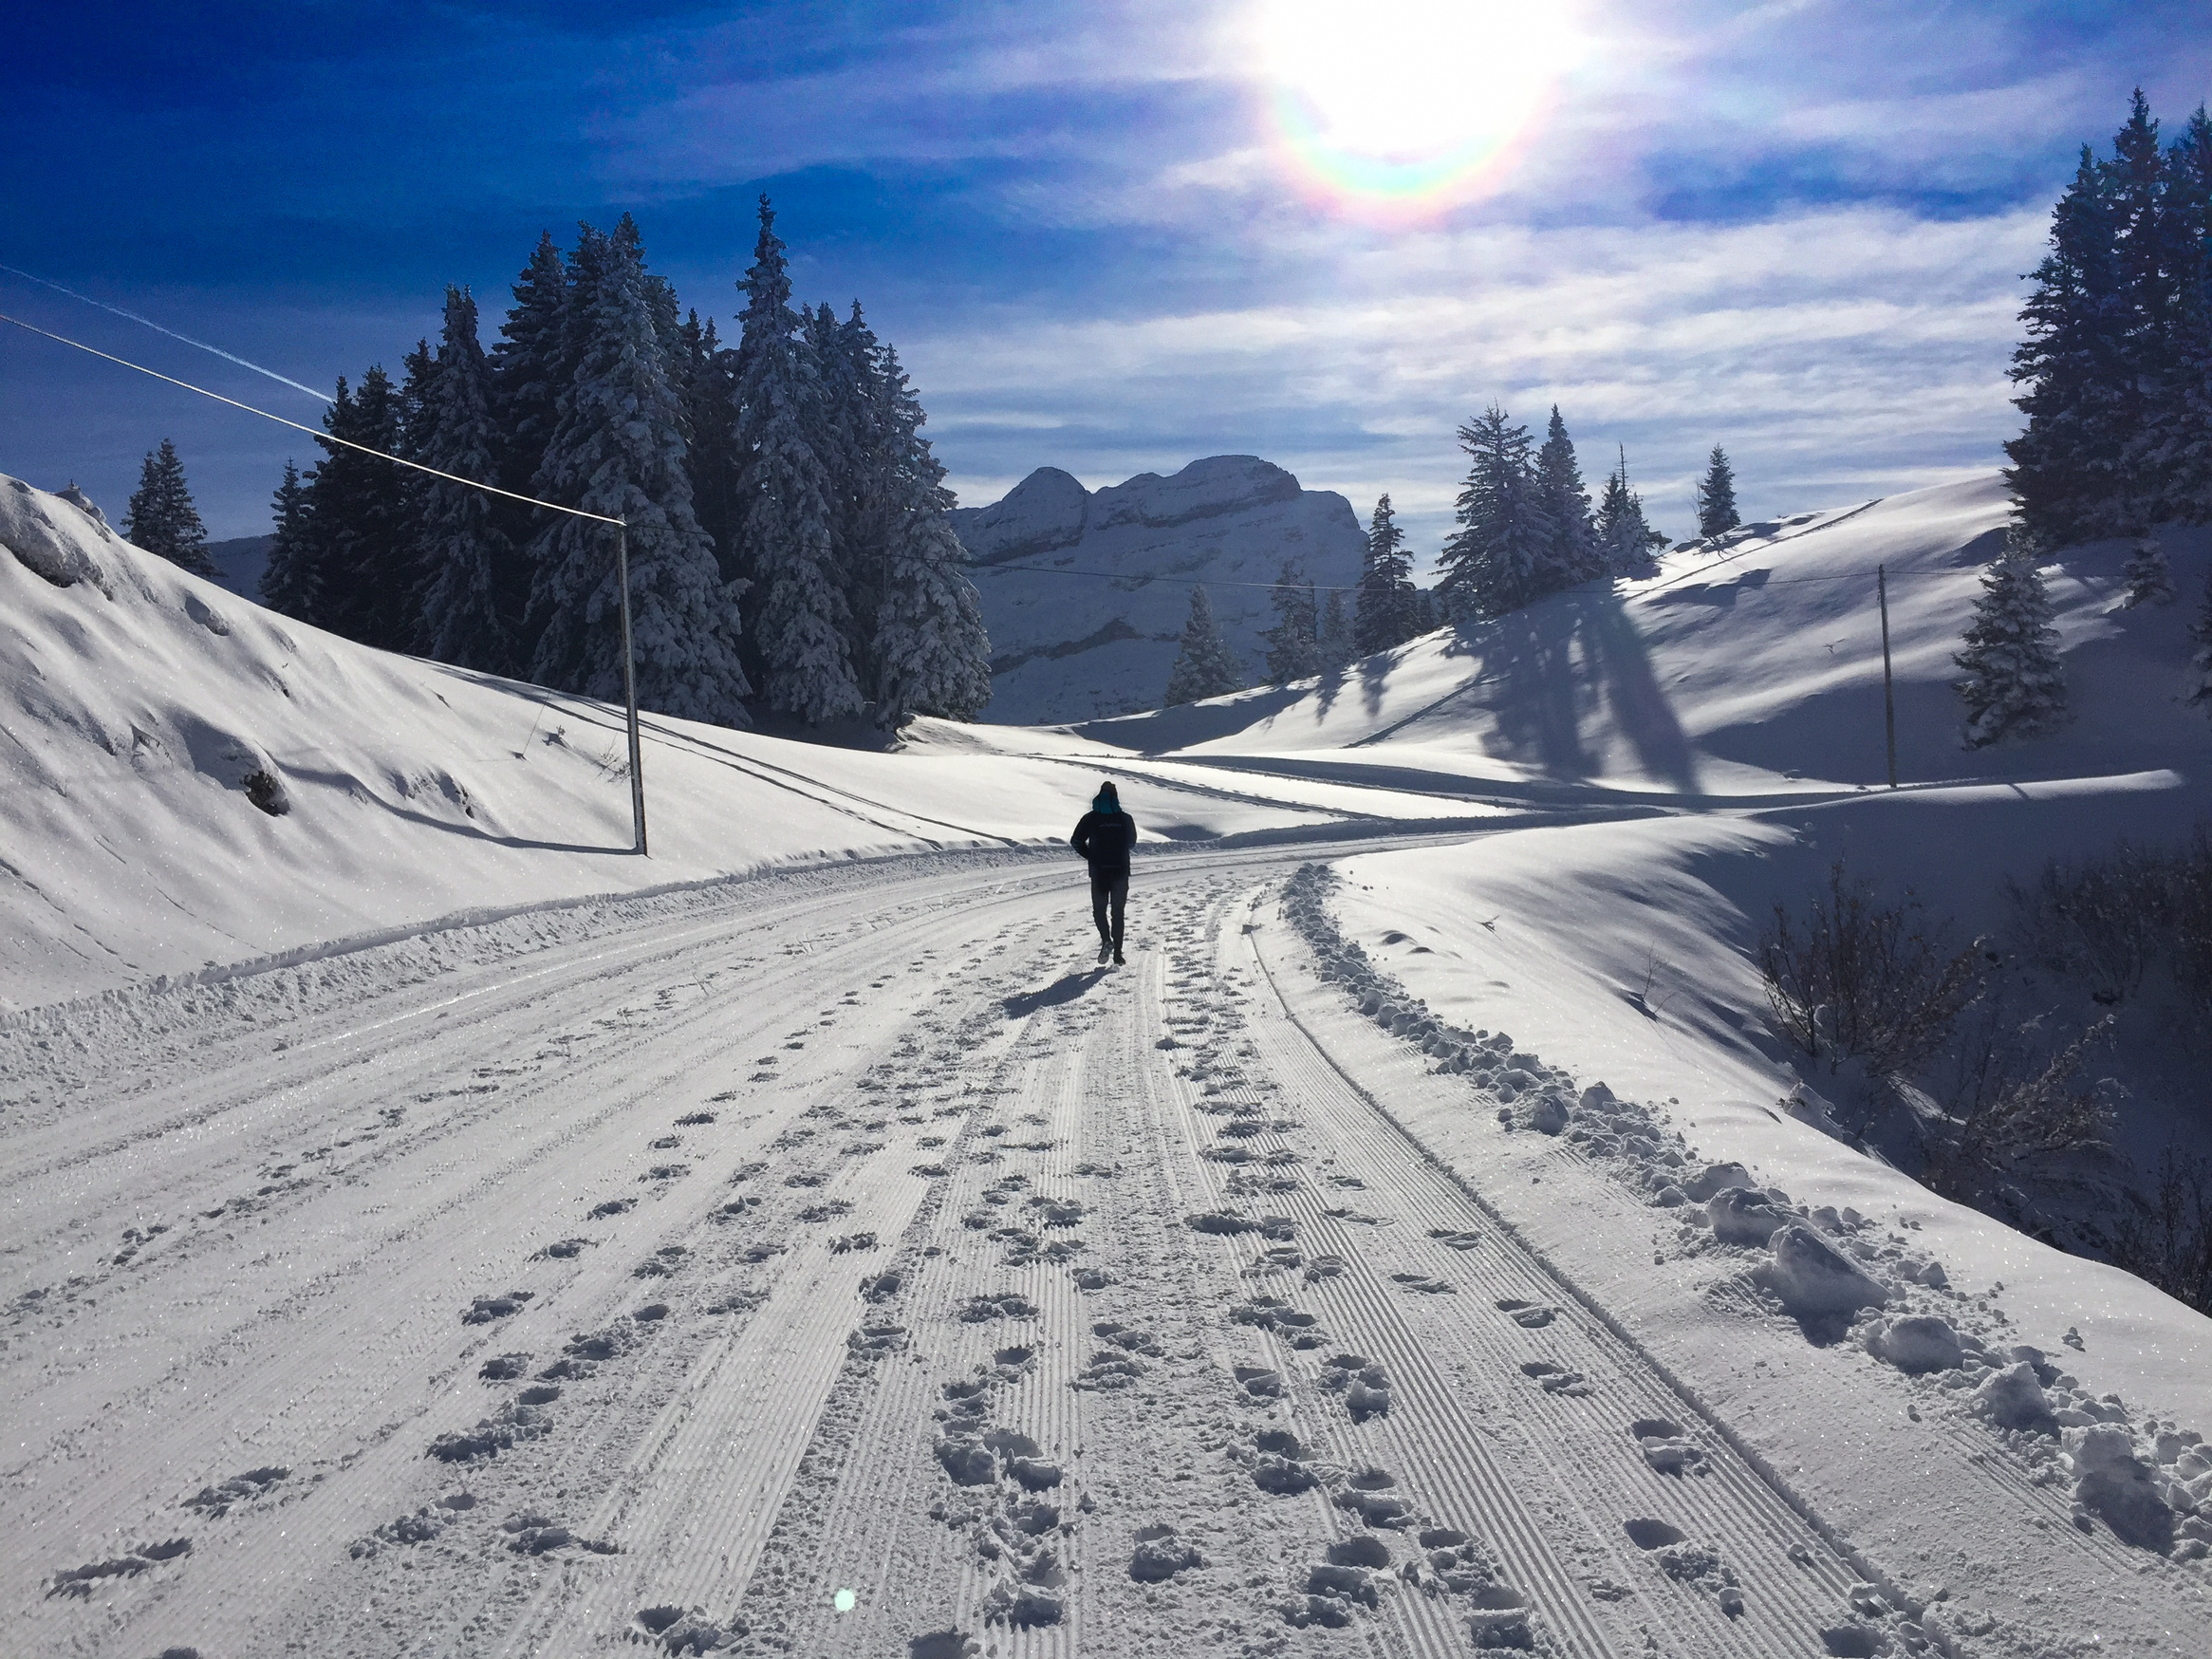 Walking the piste